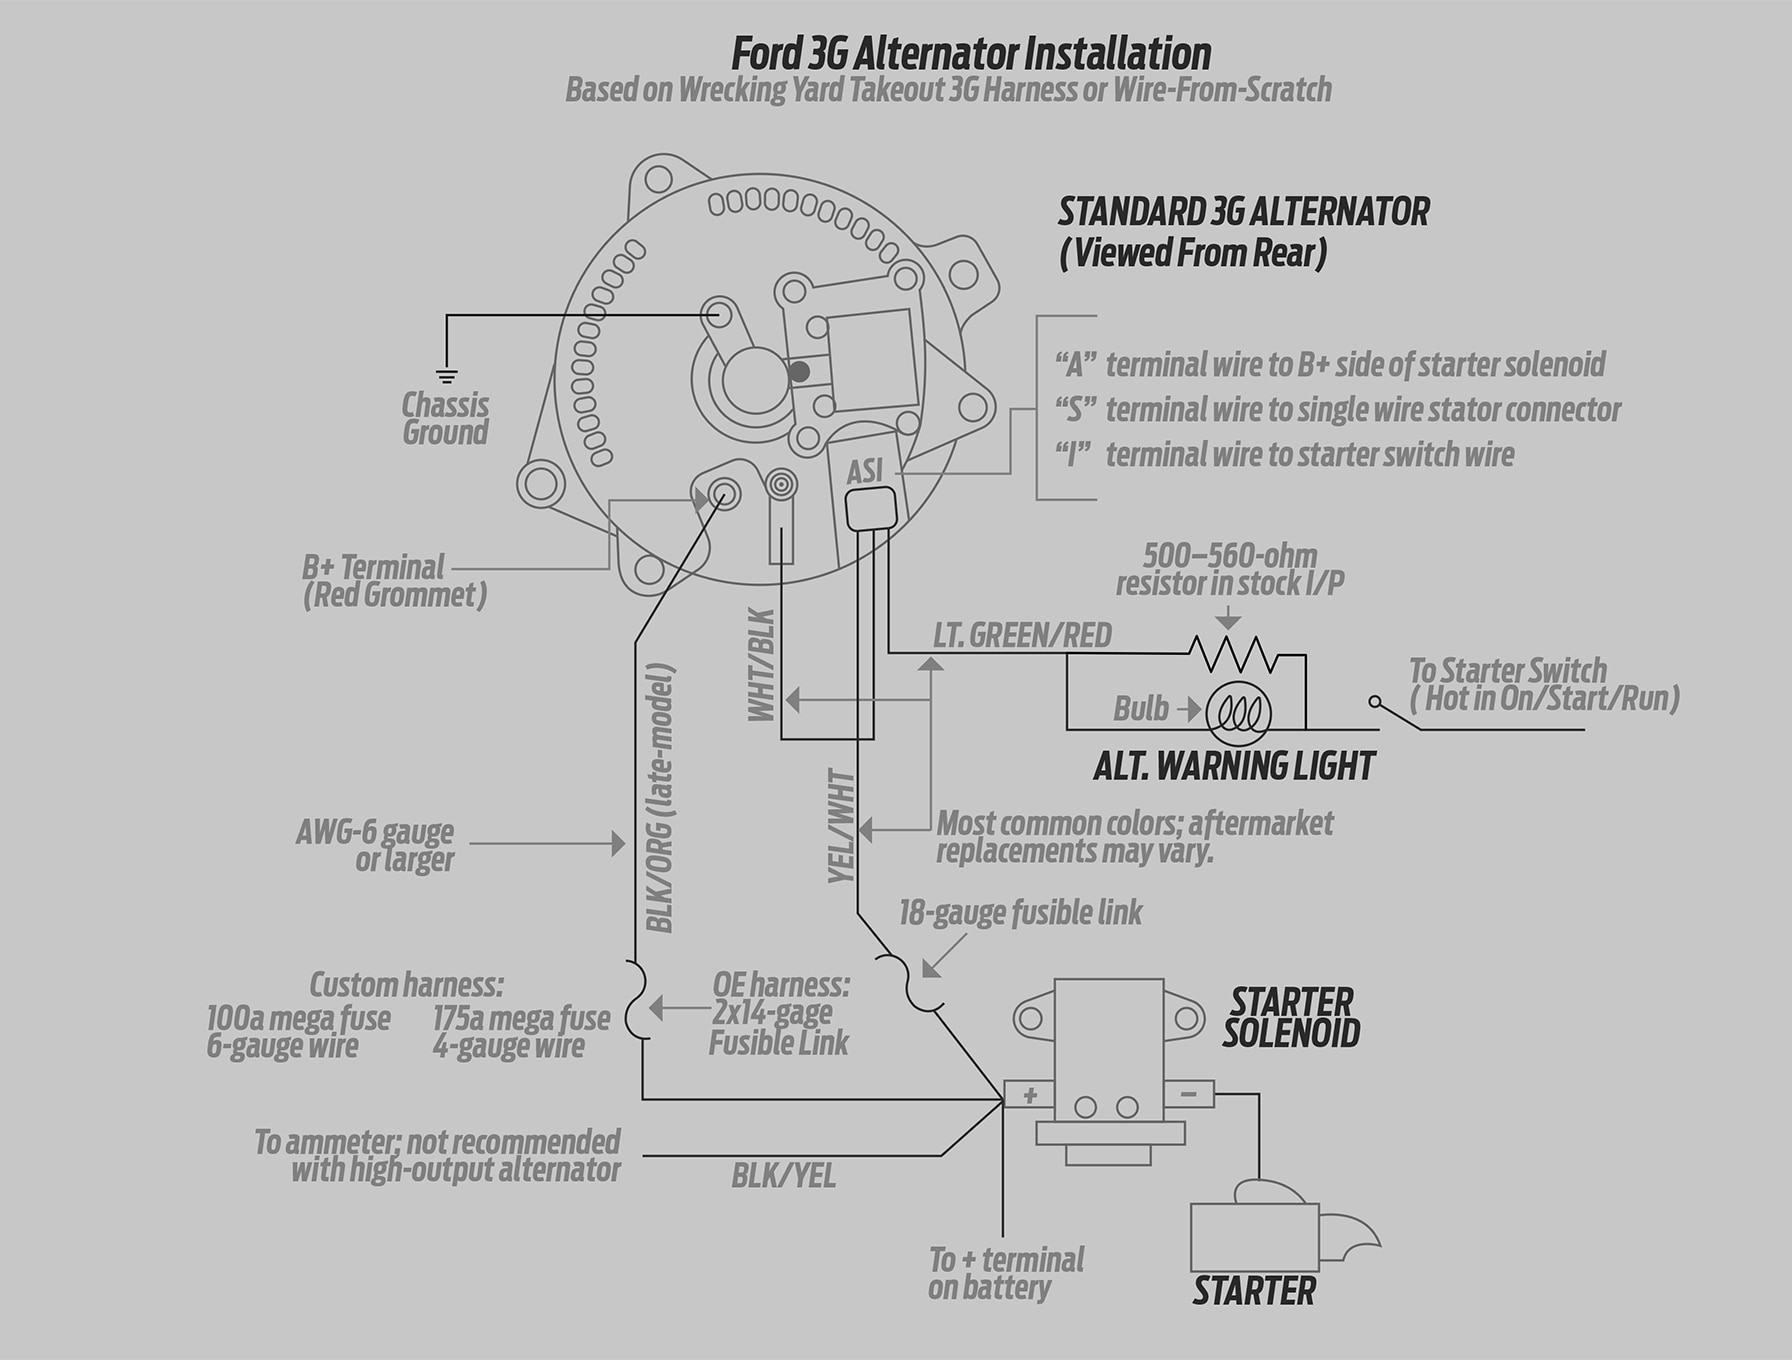 ford 3g alternator wiring wiring diagram experthow to install a high output ford 3g alternator into [ 1792 x 1360 Pixel ]